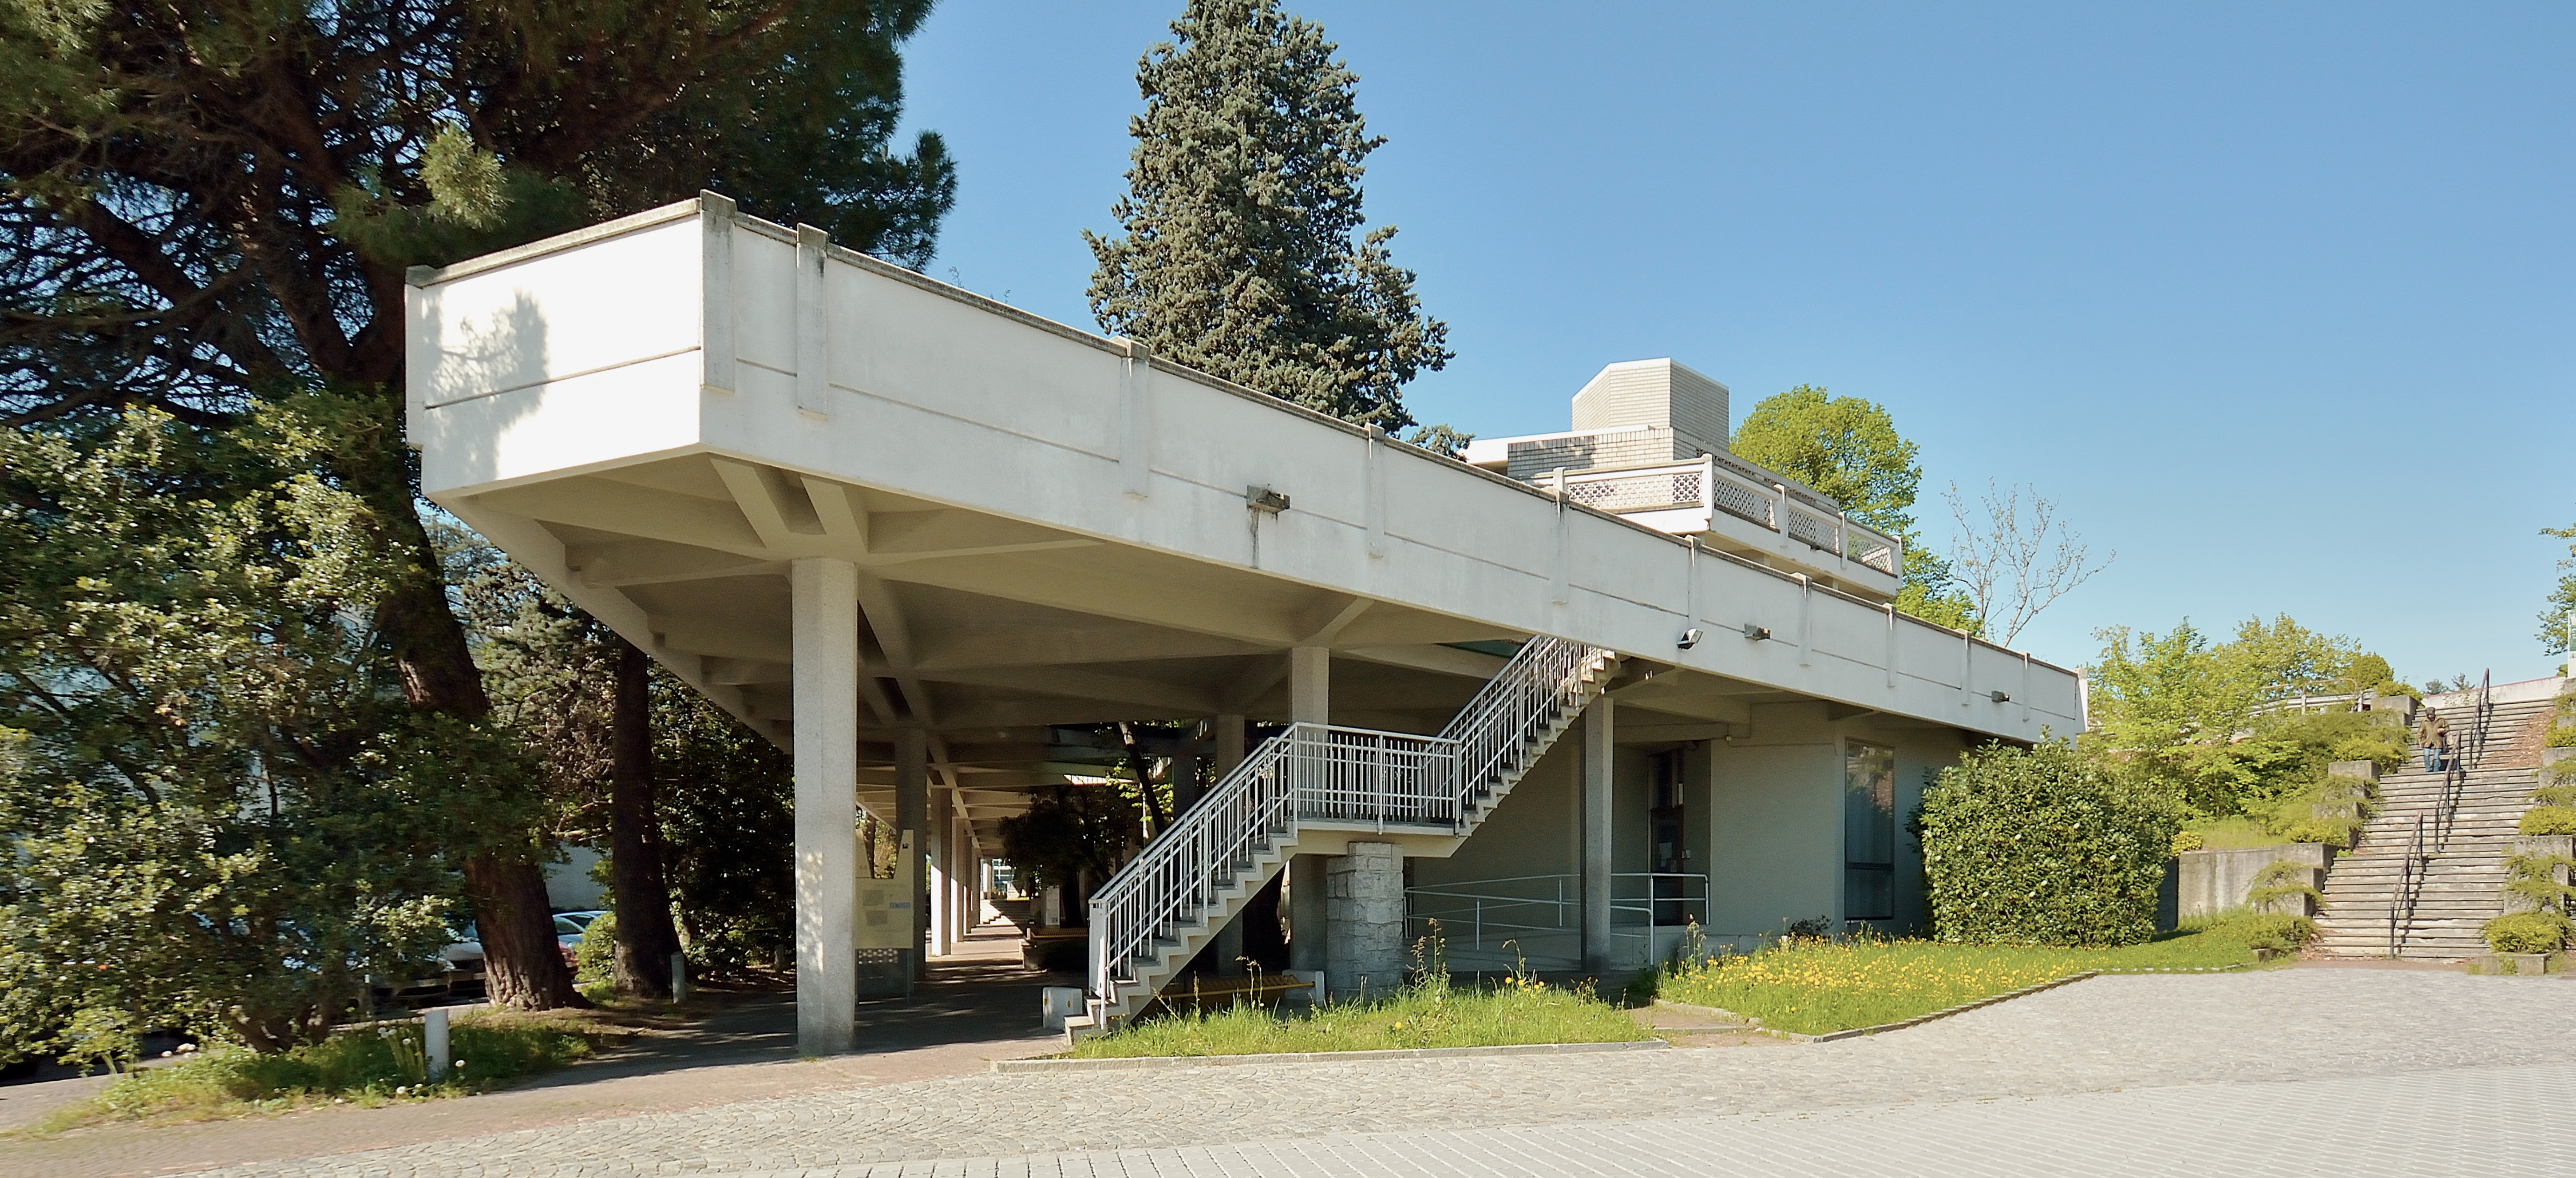 Olivetti Ivrea Portico headquarters